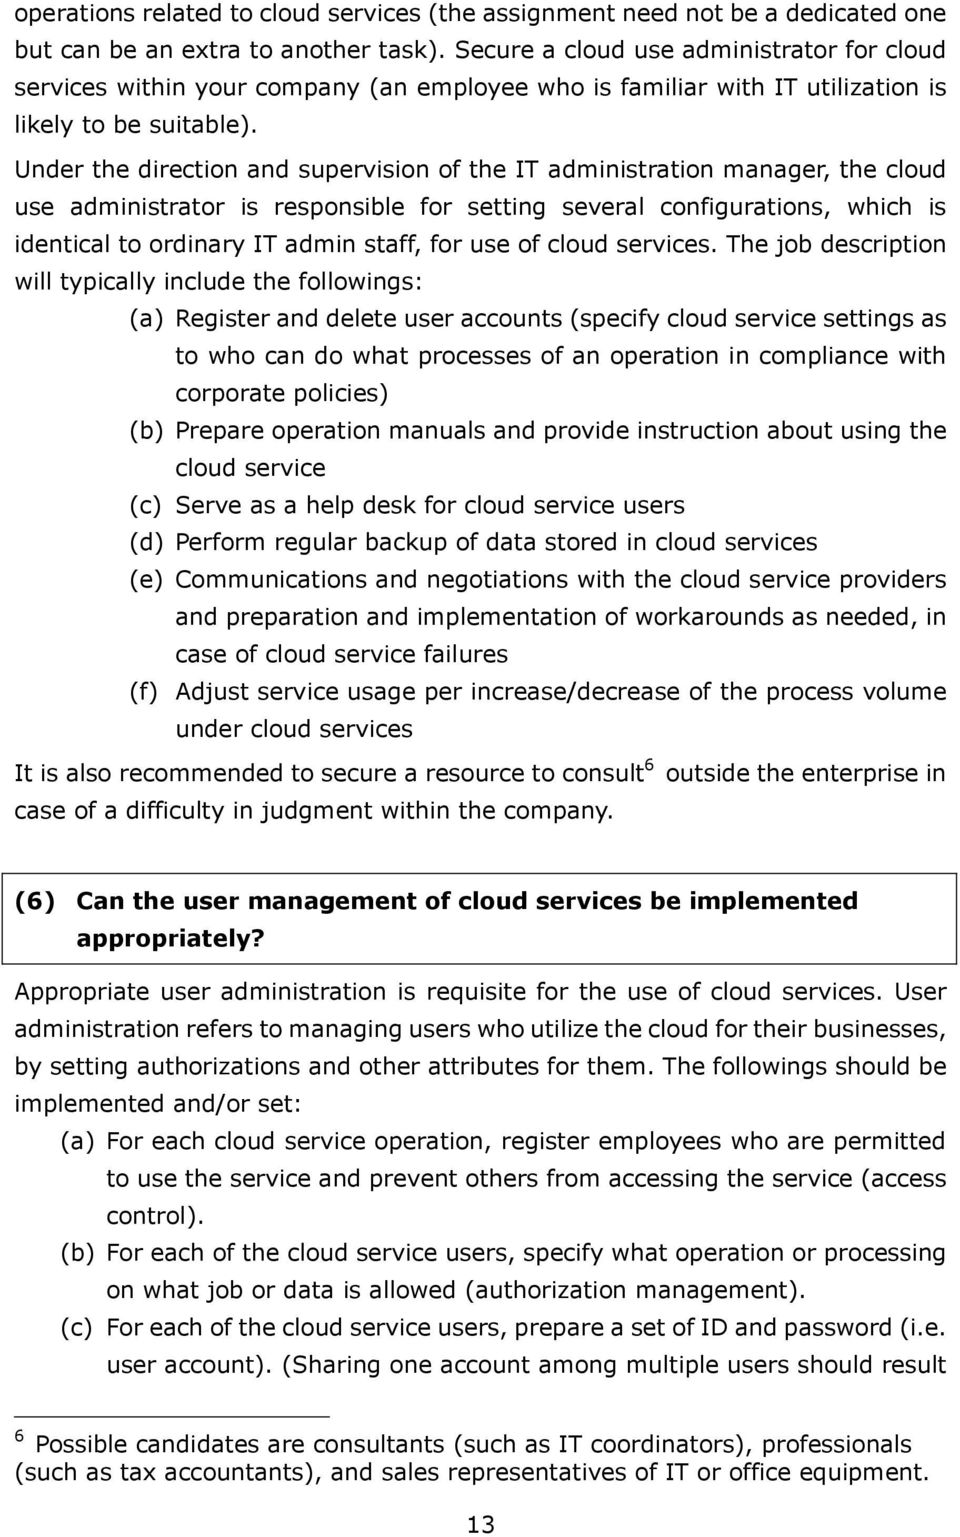 Under the direction and supervision of the IT administration manager, the cloud use administrator is responsible for setting several configurations, which is identical to ordinary IT admin staff, for